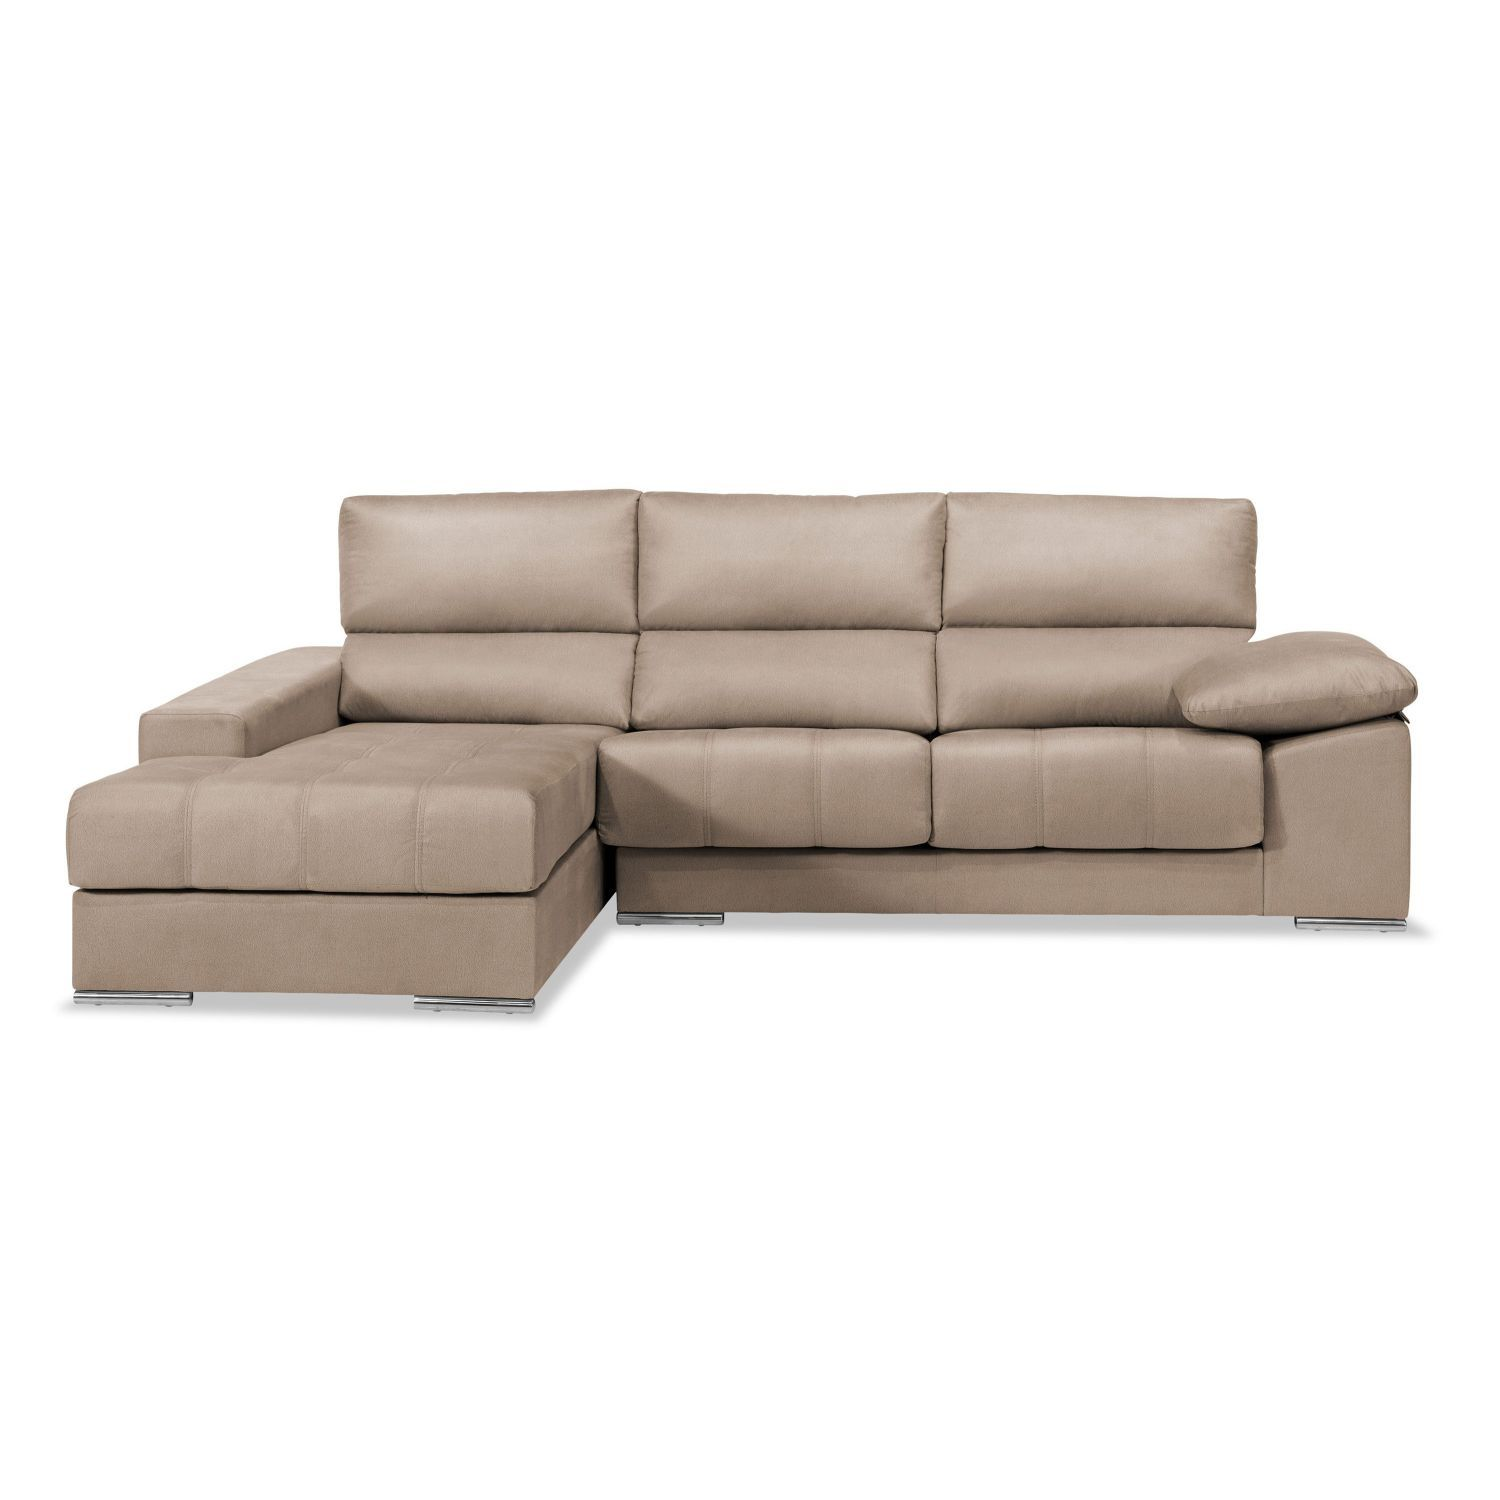 Sof chaise longue reclinable extensible beige - Sofa extensible ...